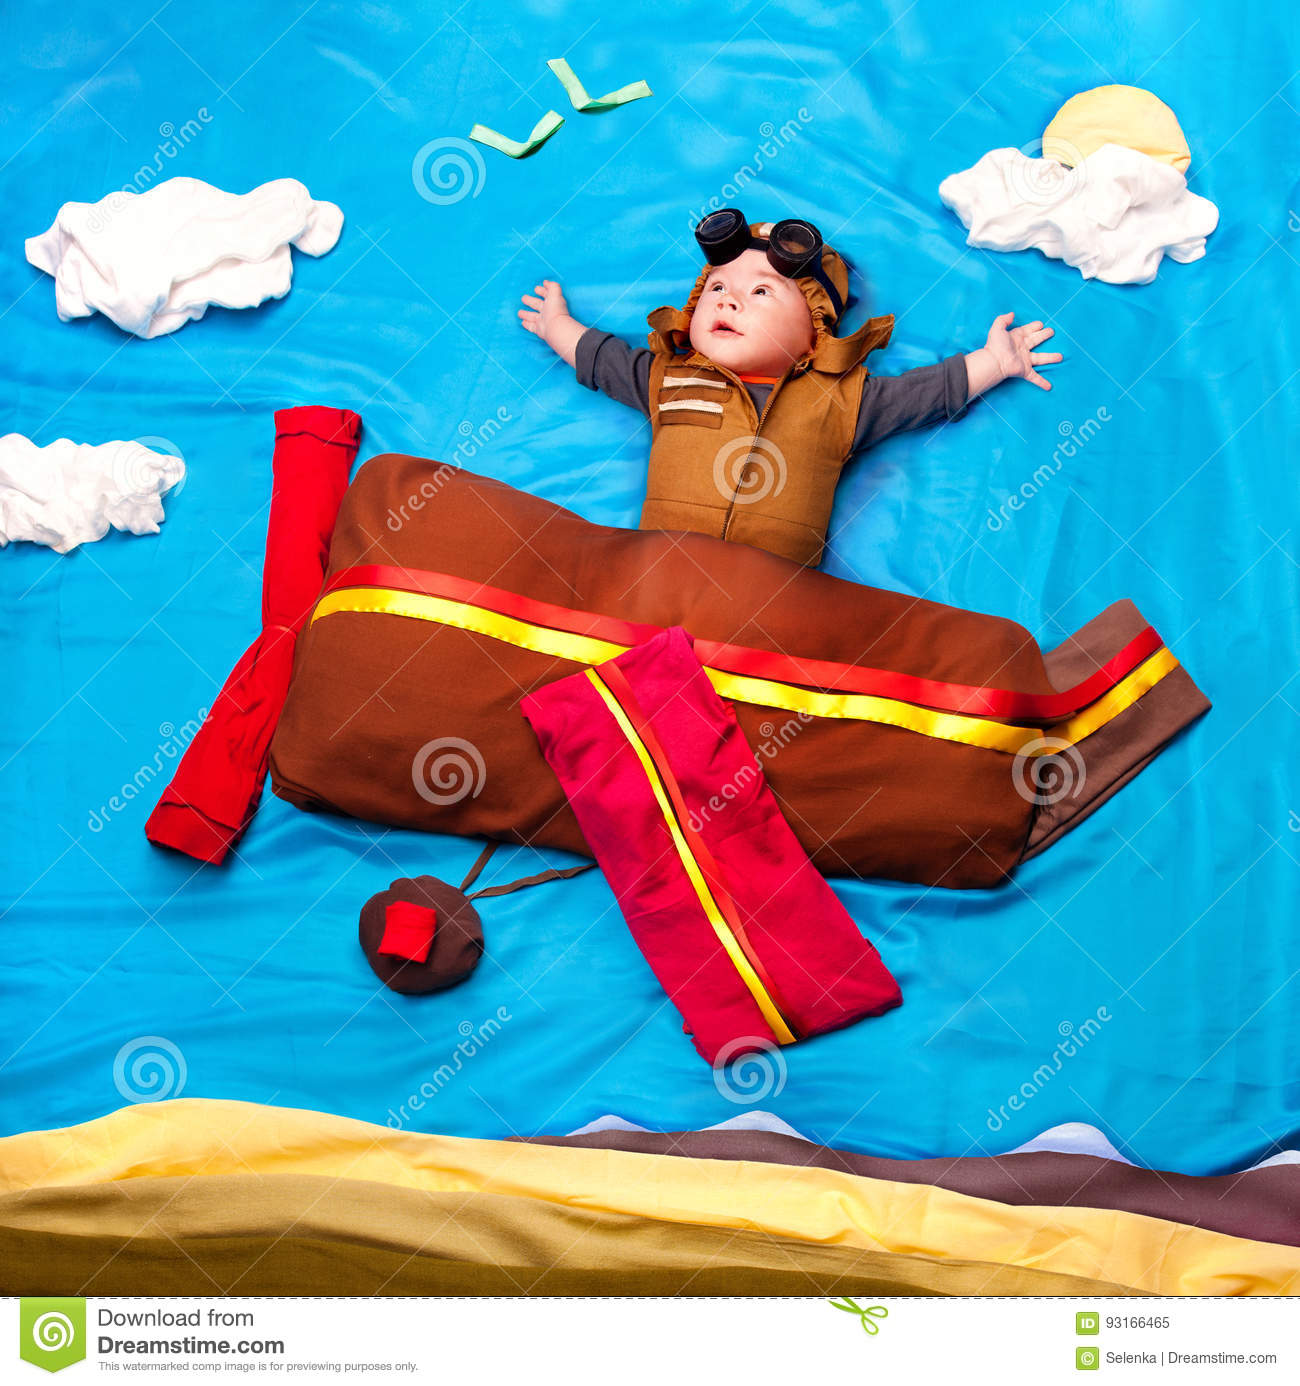 184d851da Infant Baby Boy Wearing An Aviator Hat And Outfit Flying Stock Image ...